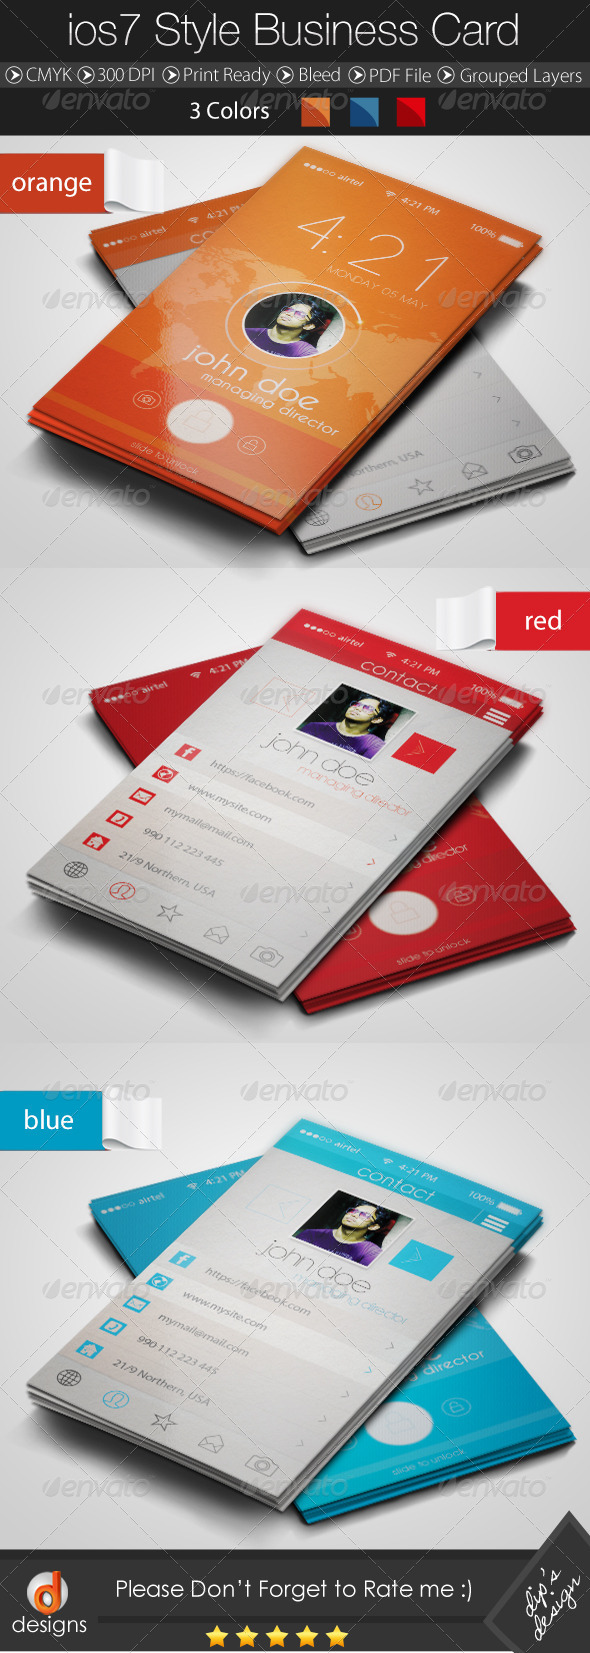 GraphicRiver IOS 7 Style Business Card 8566099